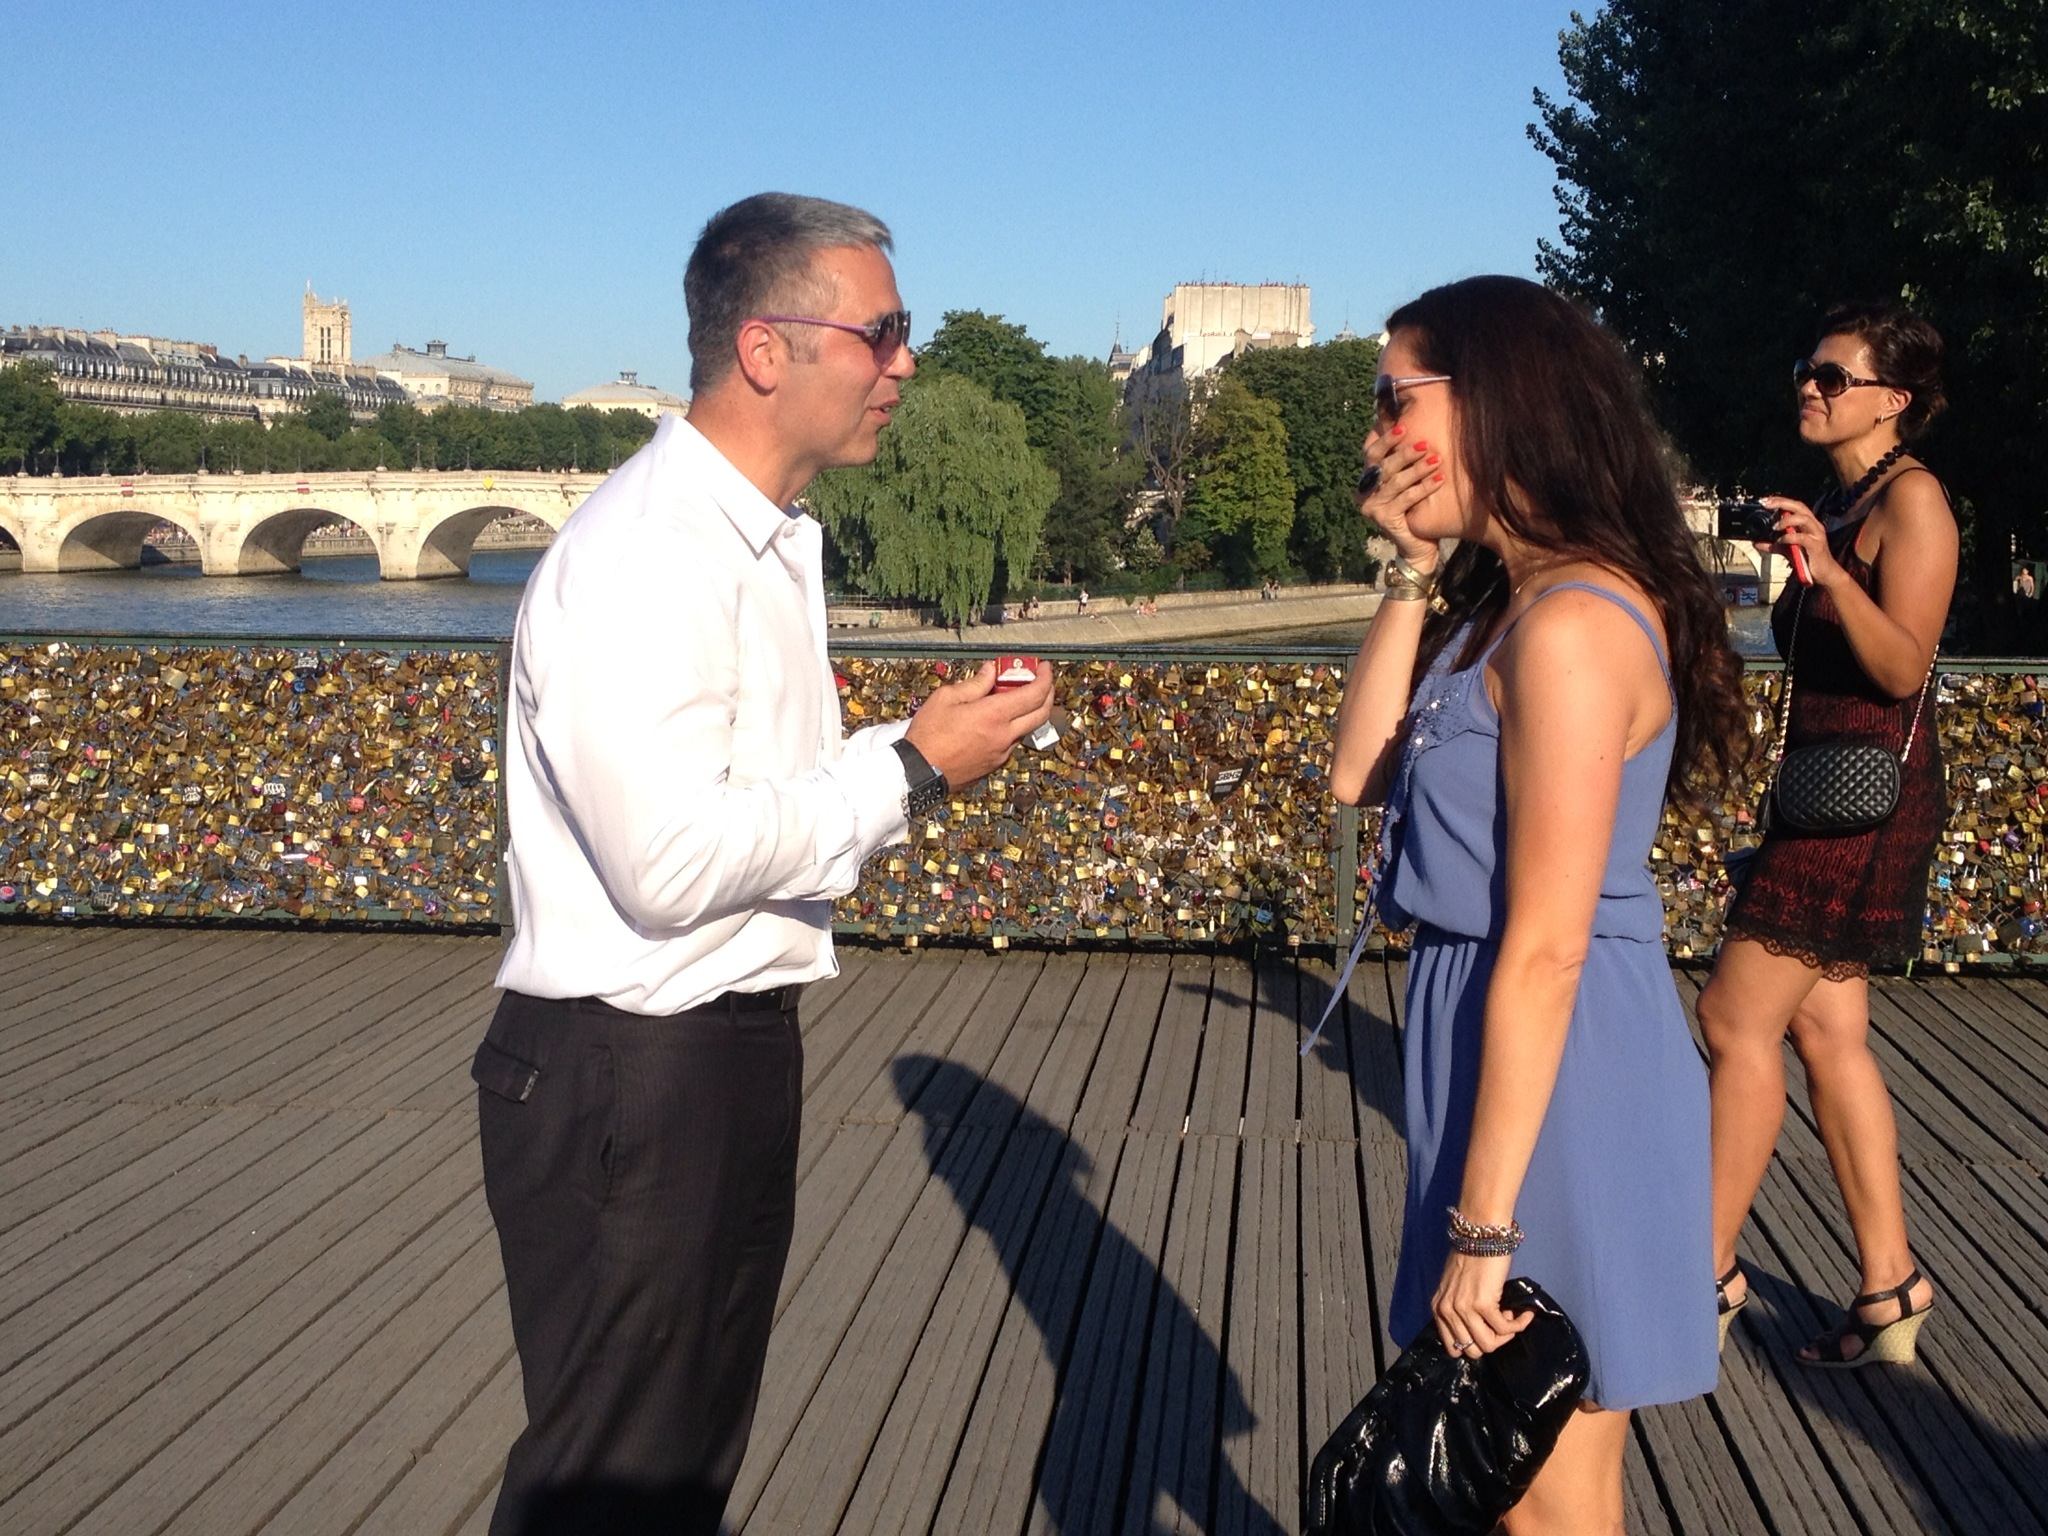 Image 3 of Erica and Doug | Proposal in Paris